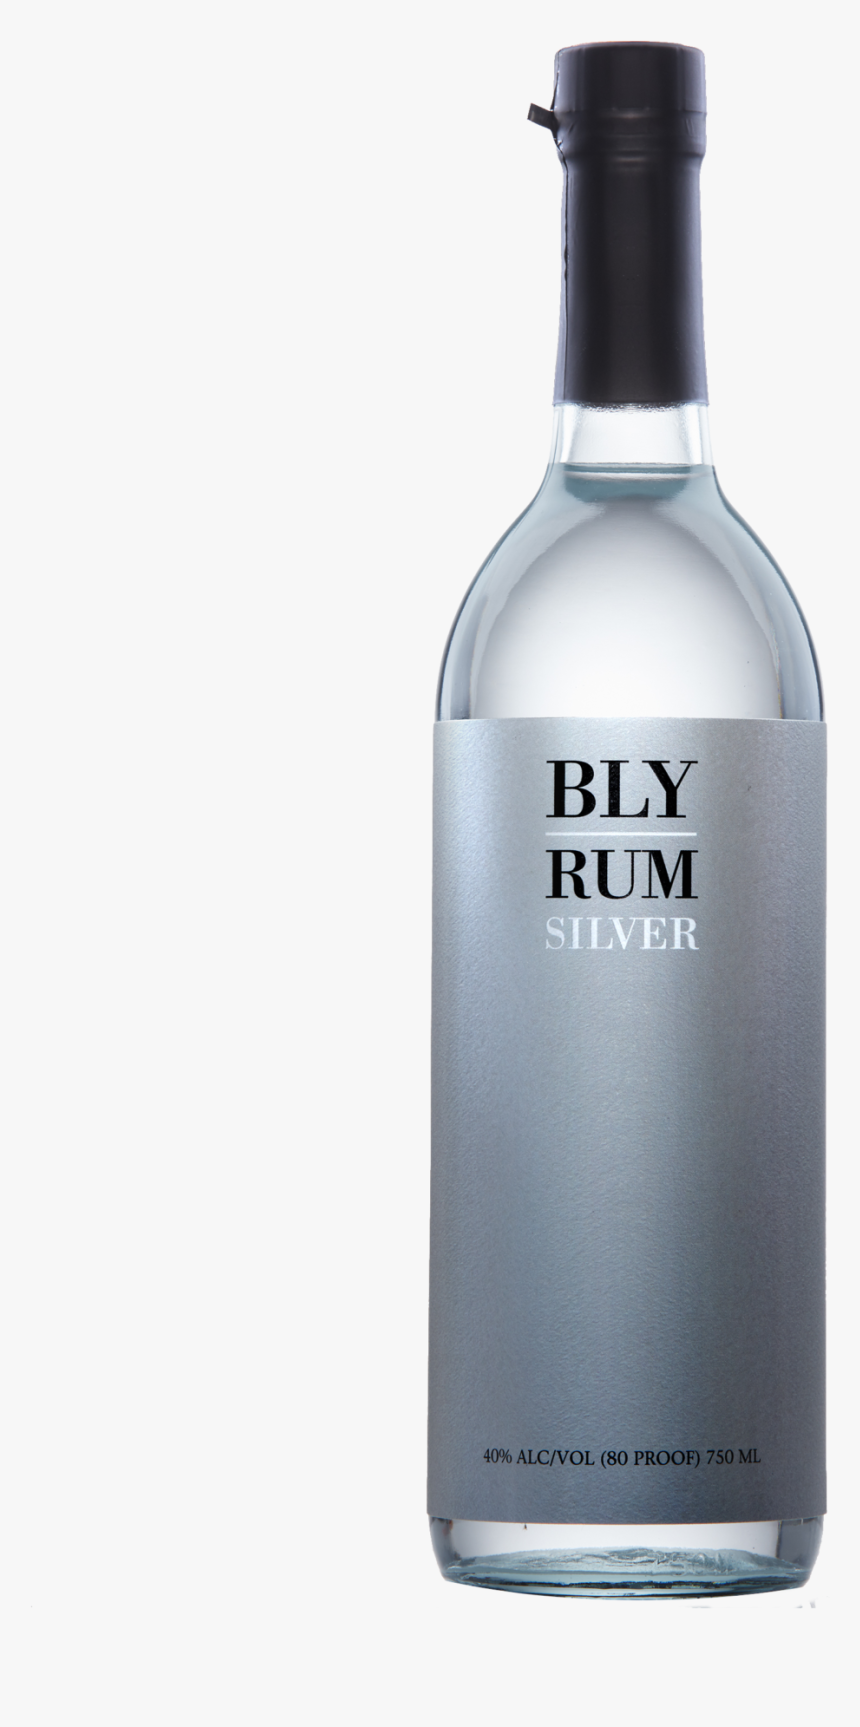 Bly Silver Rum Awarded 5-star Rating In Spirit Journal - Glass Bottle, HD Png Download, Free Download